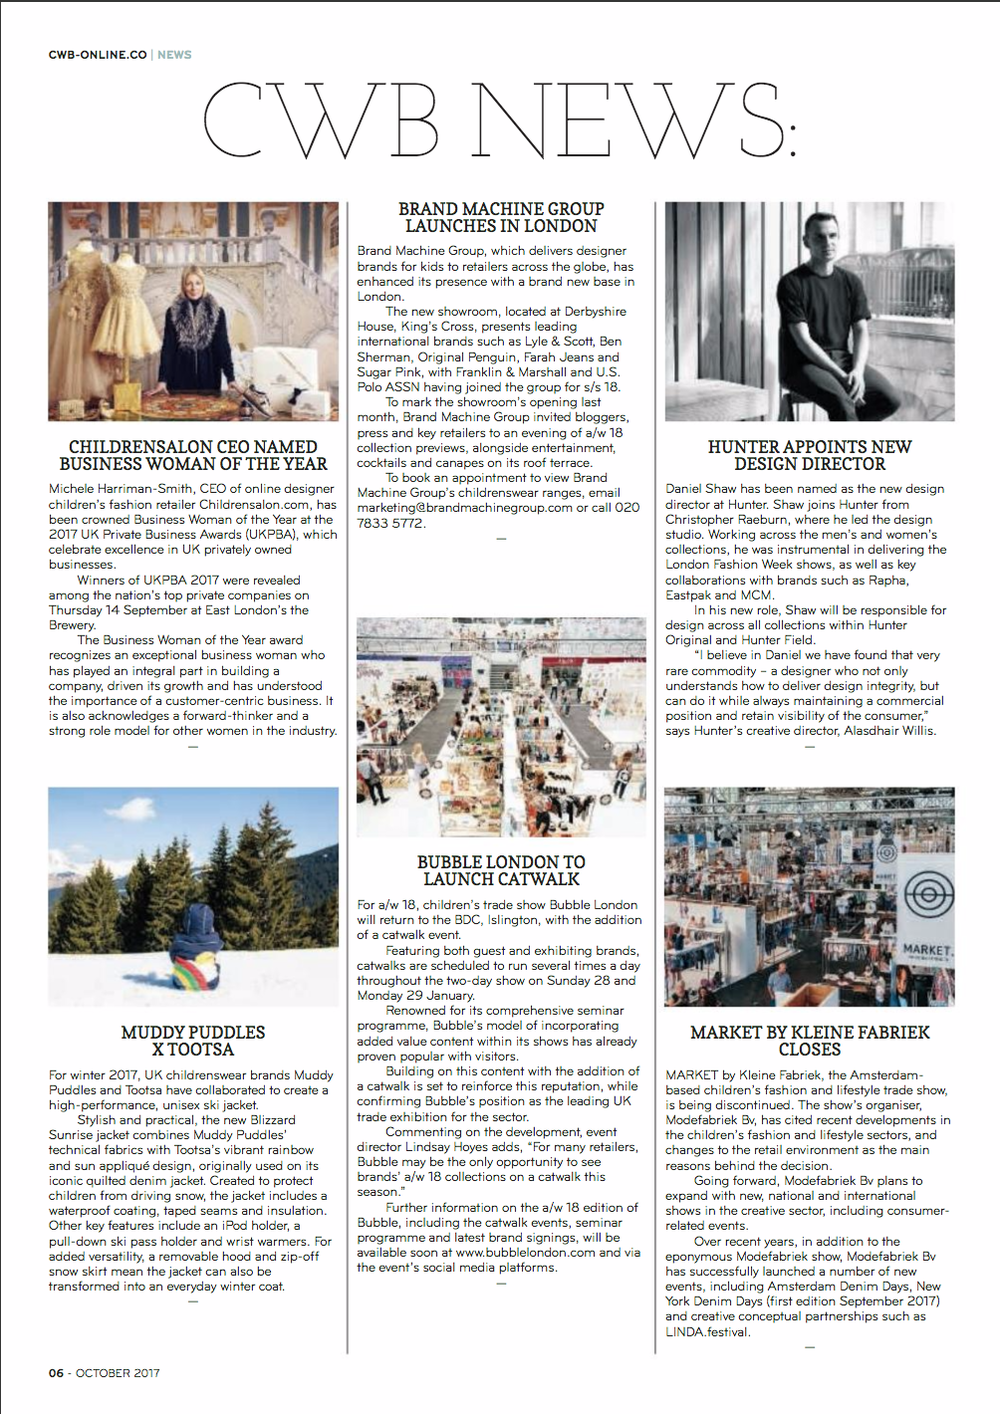 04.10.17 - CWB -  London Launch News Feature - Print .png